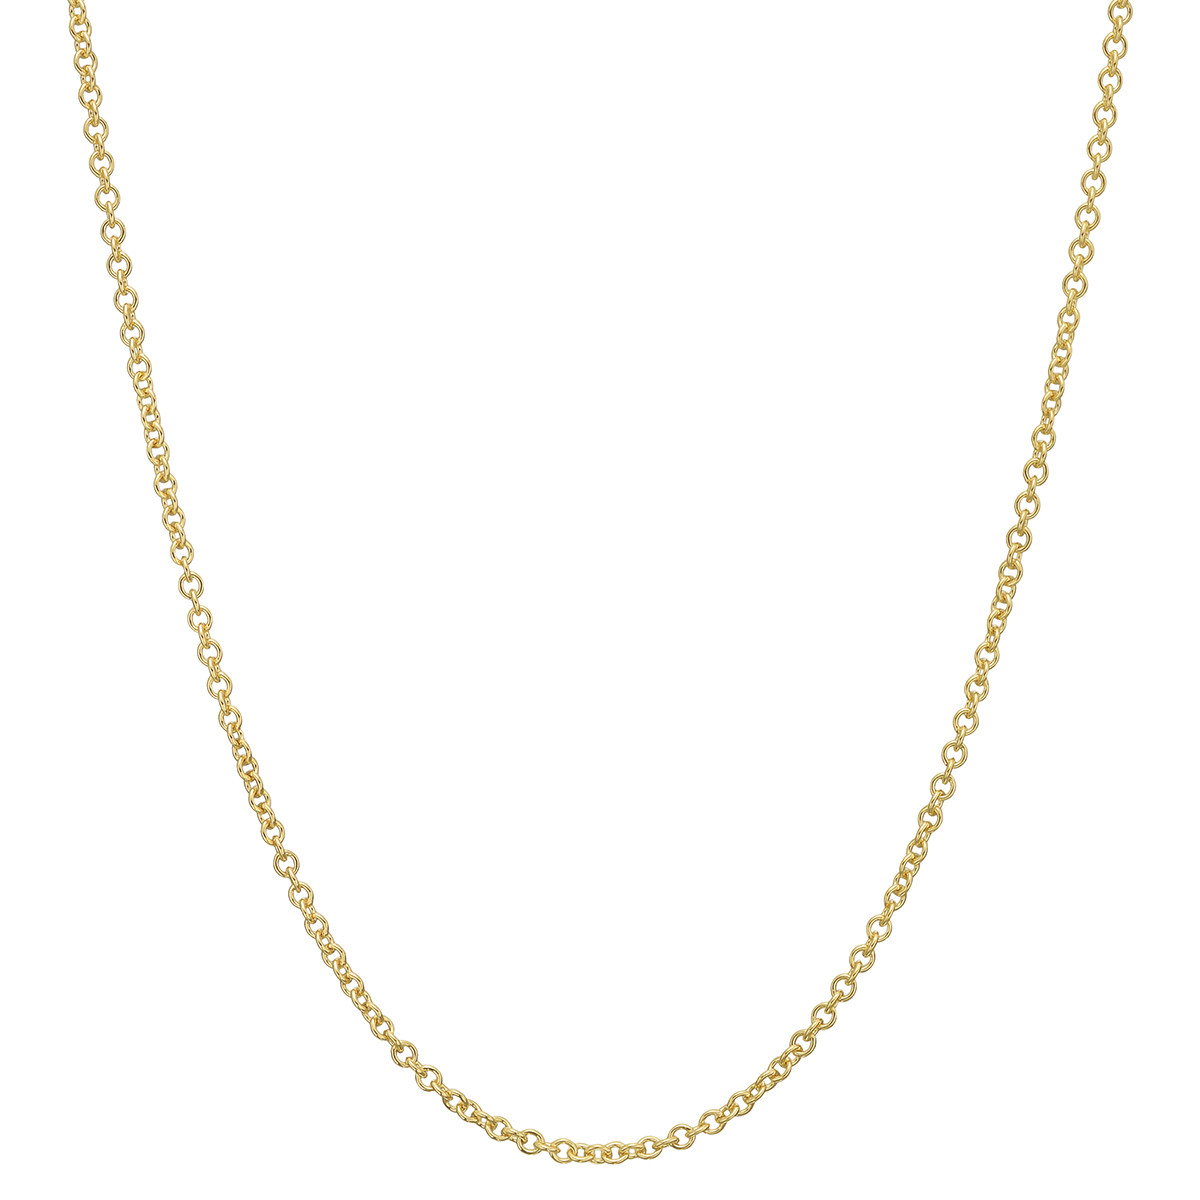 "14k Yellow Gold Chain Necklace (18"")"